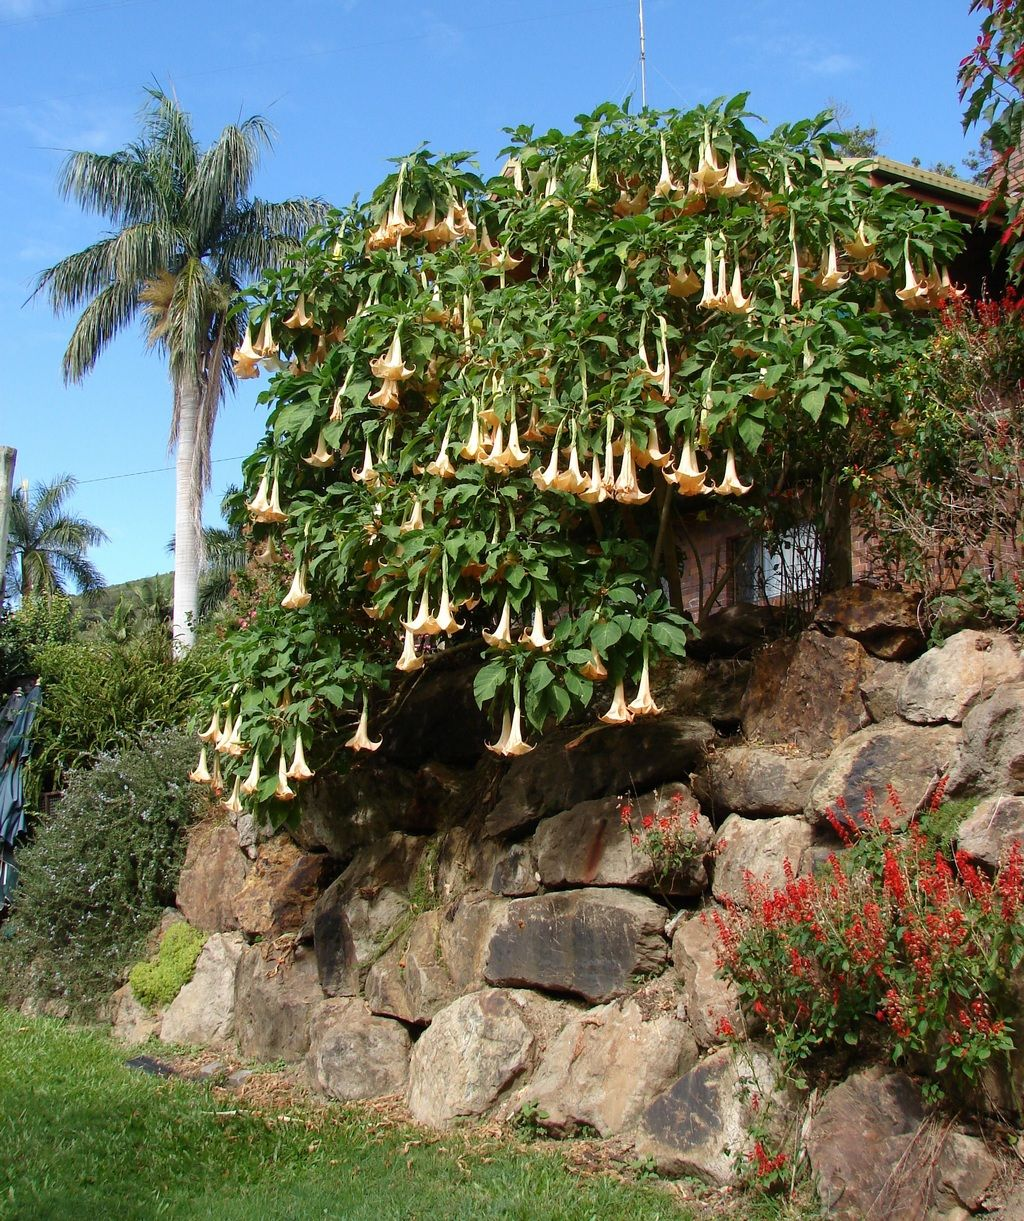 iMAGE OF BRUGMANSIA - Google Search